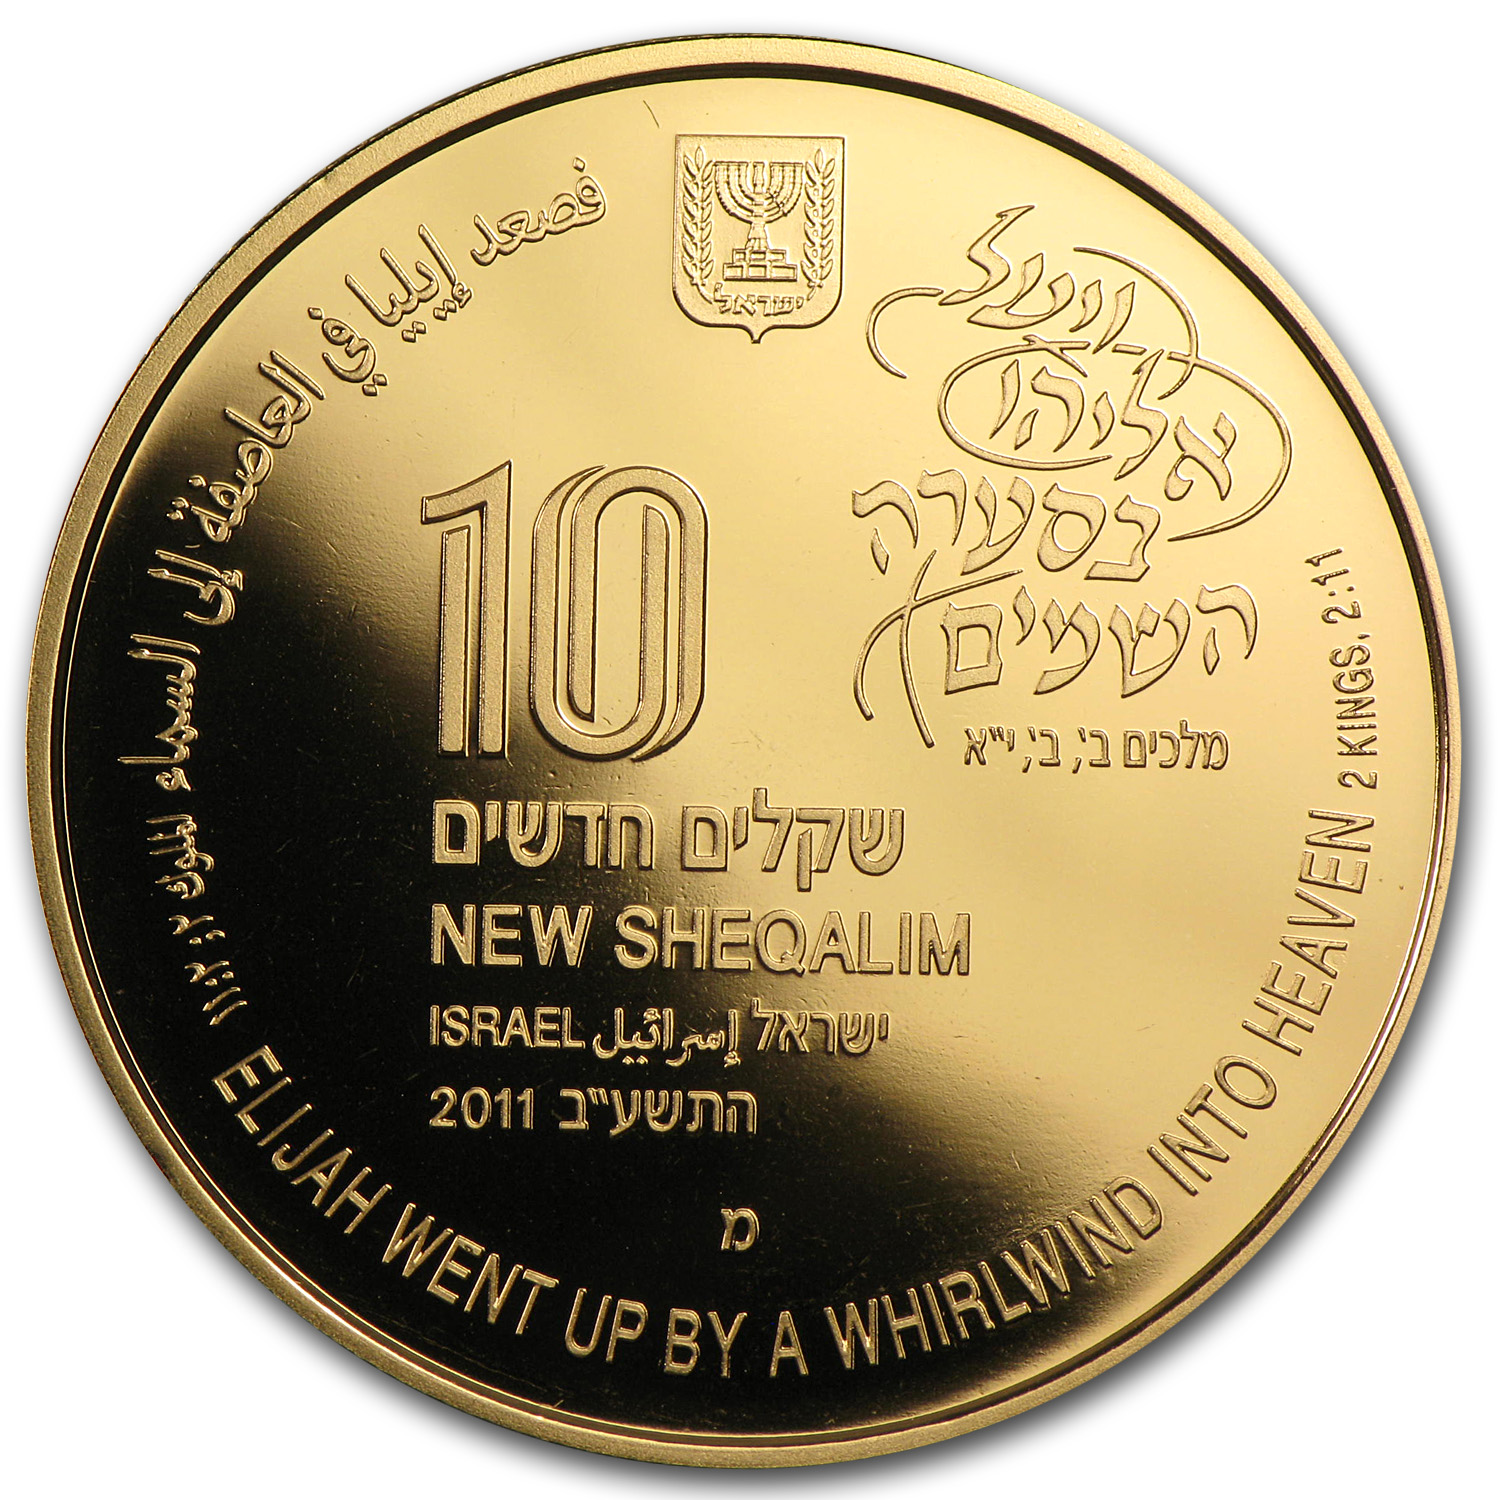 2011 Israel Elijah & Whirlwind 1/2 oz Proof Gold Coin W/Box & Coa